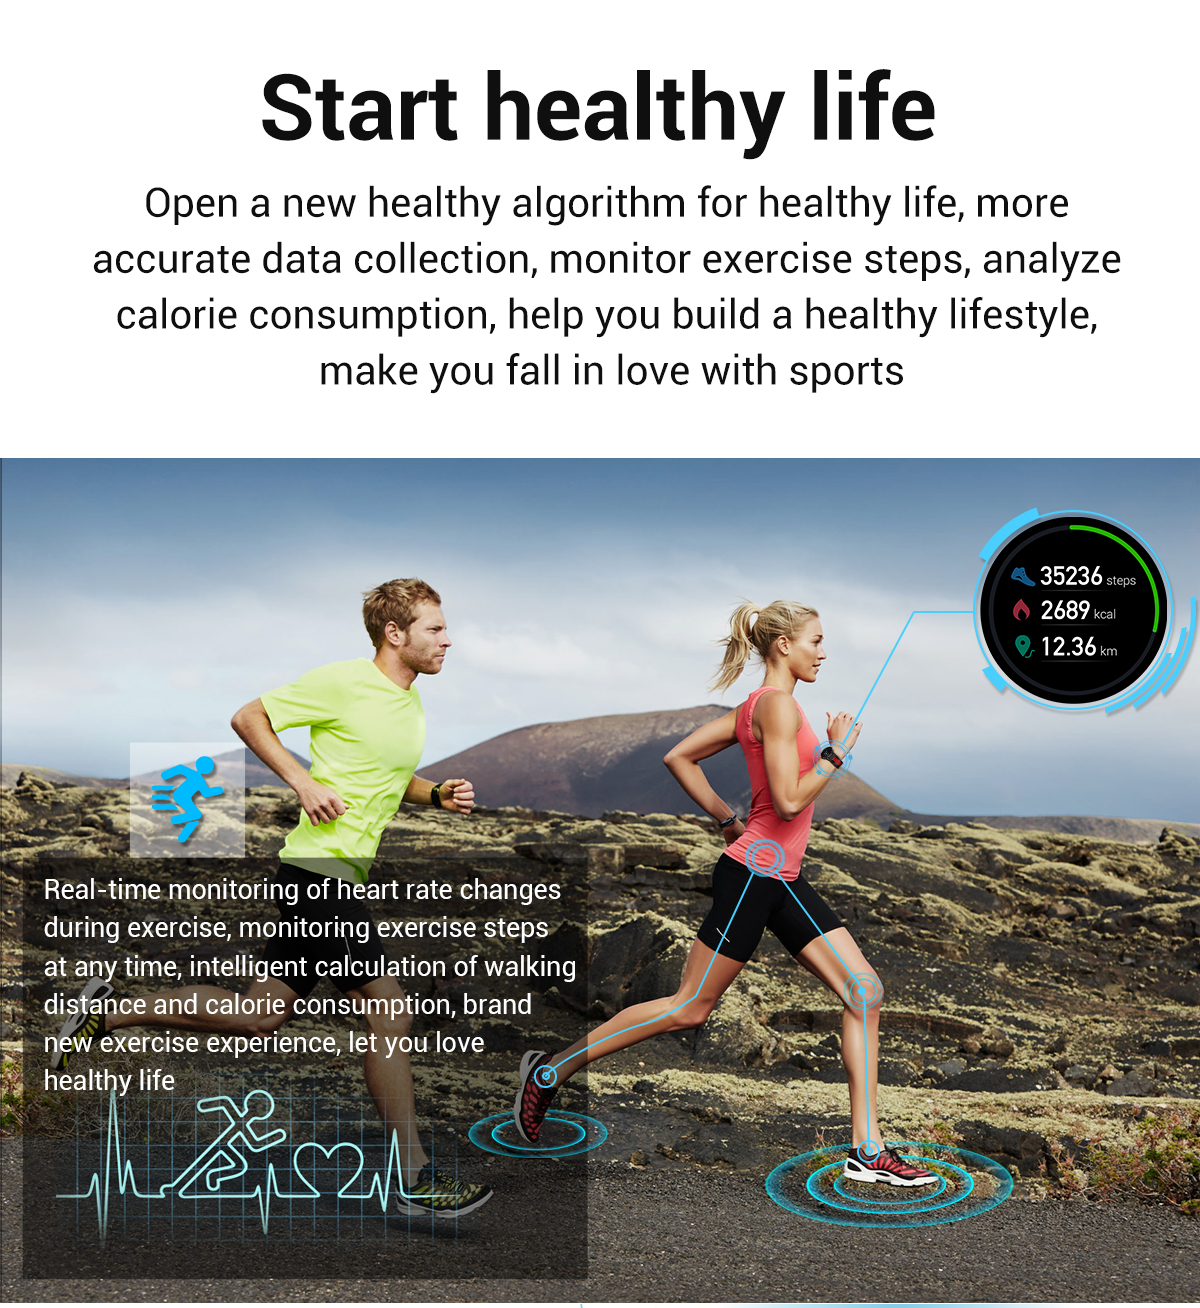 Hcdbf3e2db6f543669cdd41ed18973e71P 2020 New L6 Smart Watch IP68 Waterproof Sport Men Women Bluetooth Smartwatch Fitness Tracker Heart Rate Monitor For Android IOS